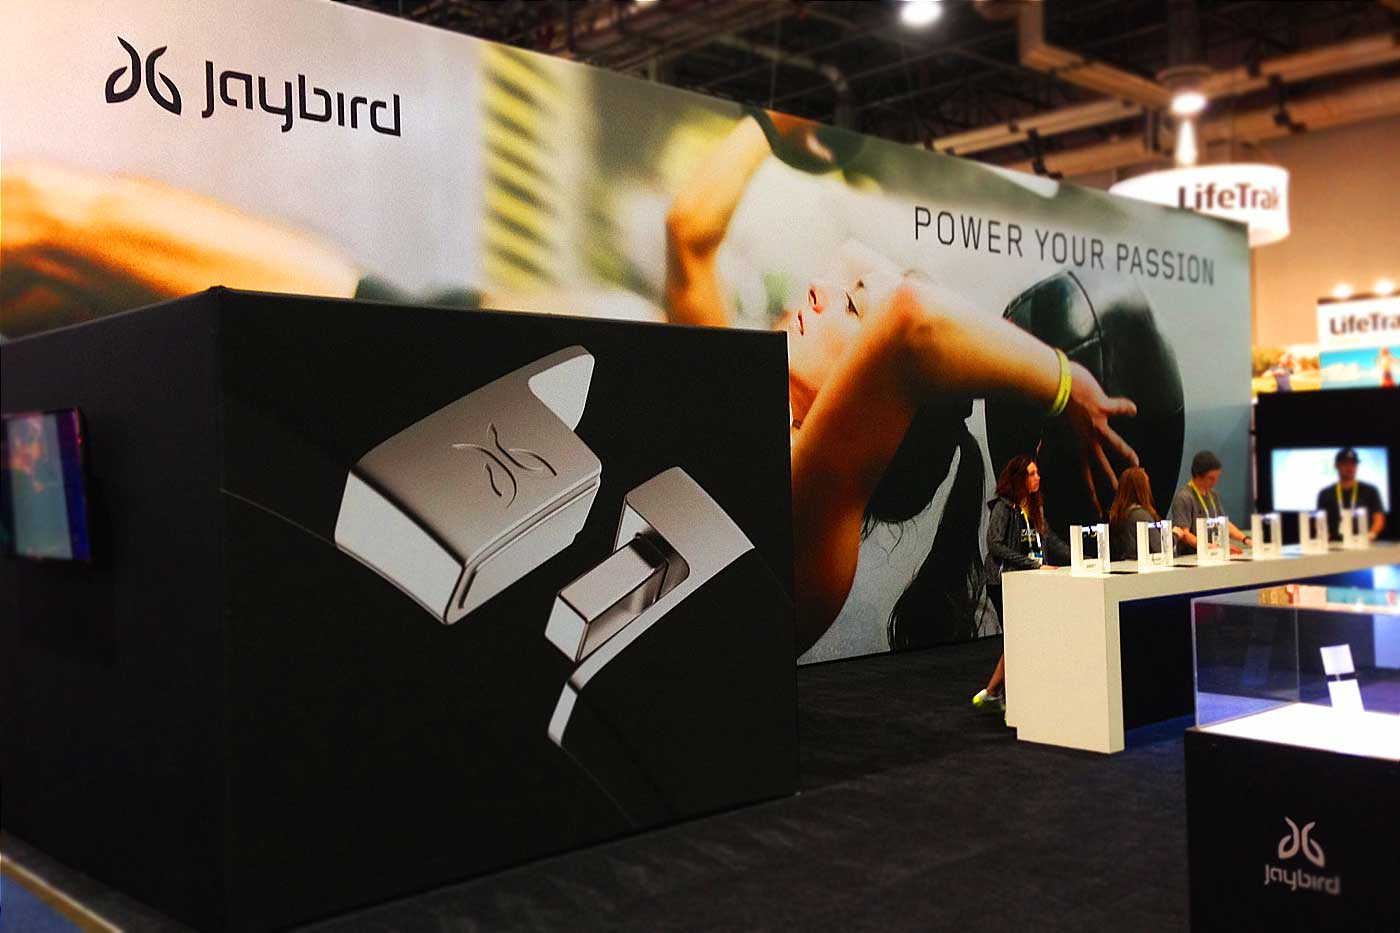 jaybird  nice trade show booth design - bxc designed the jaybird logo